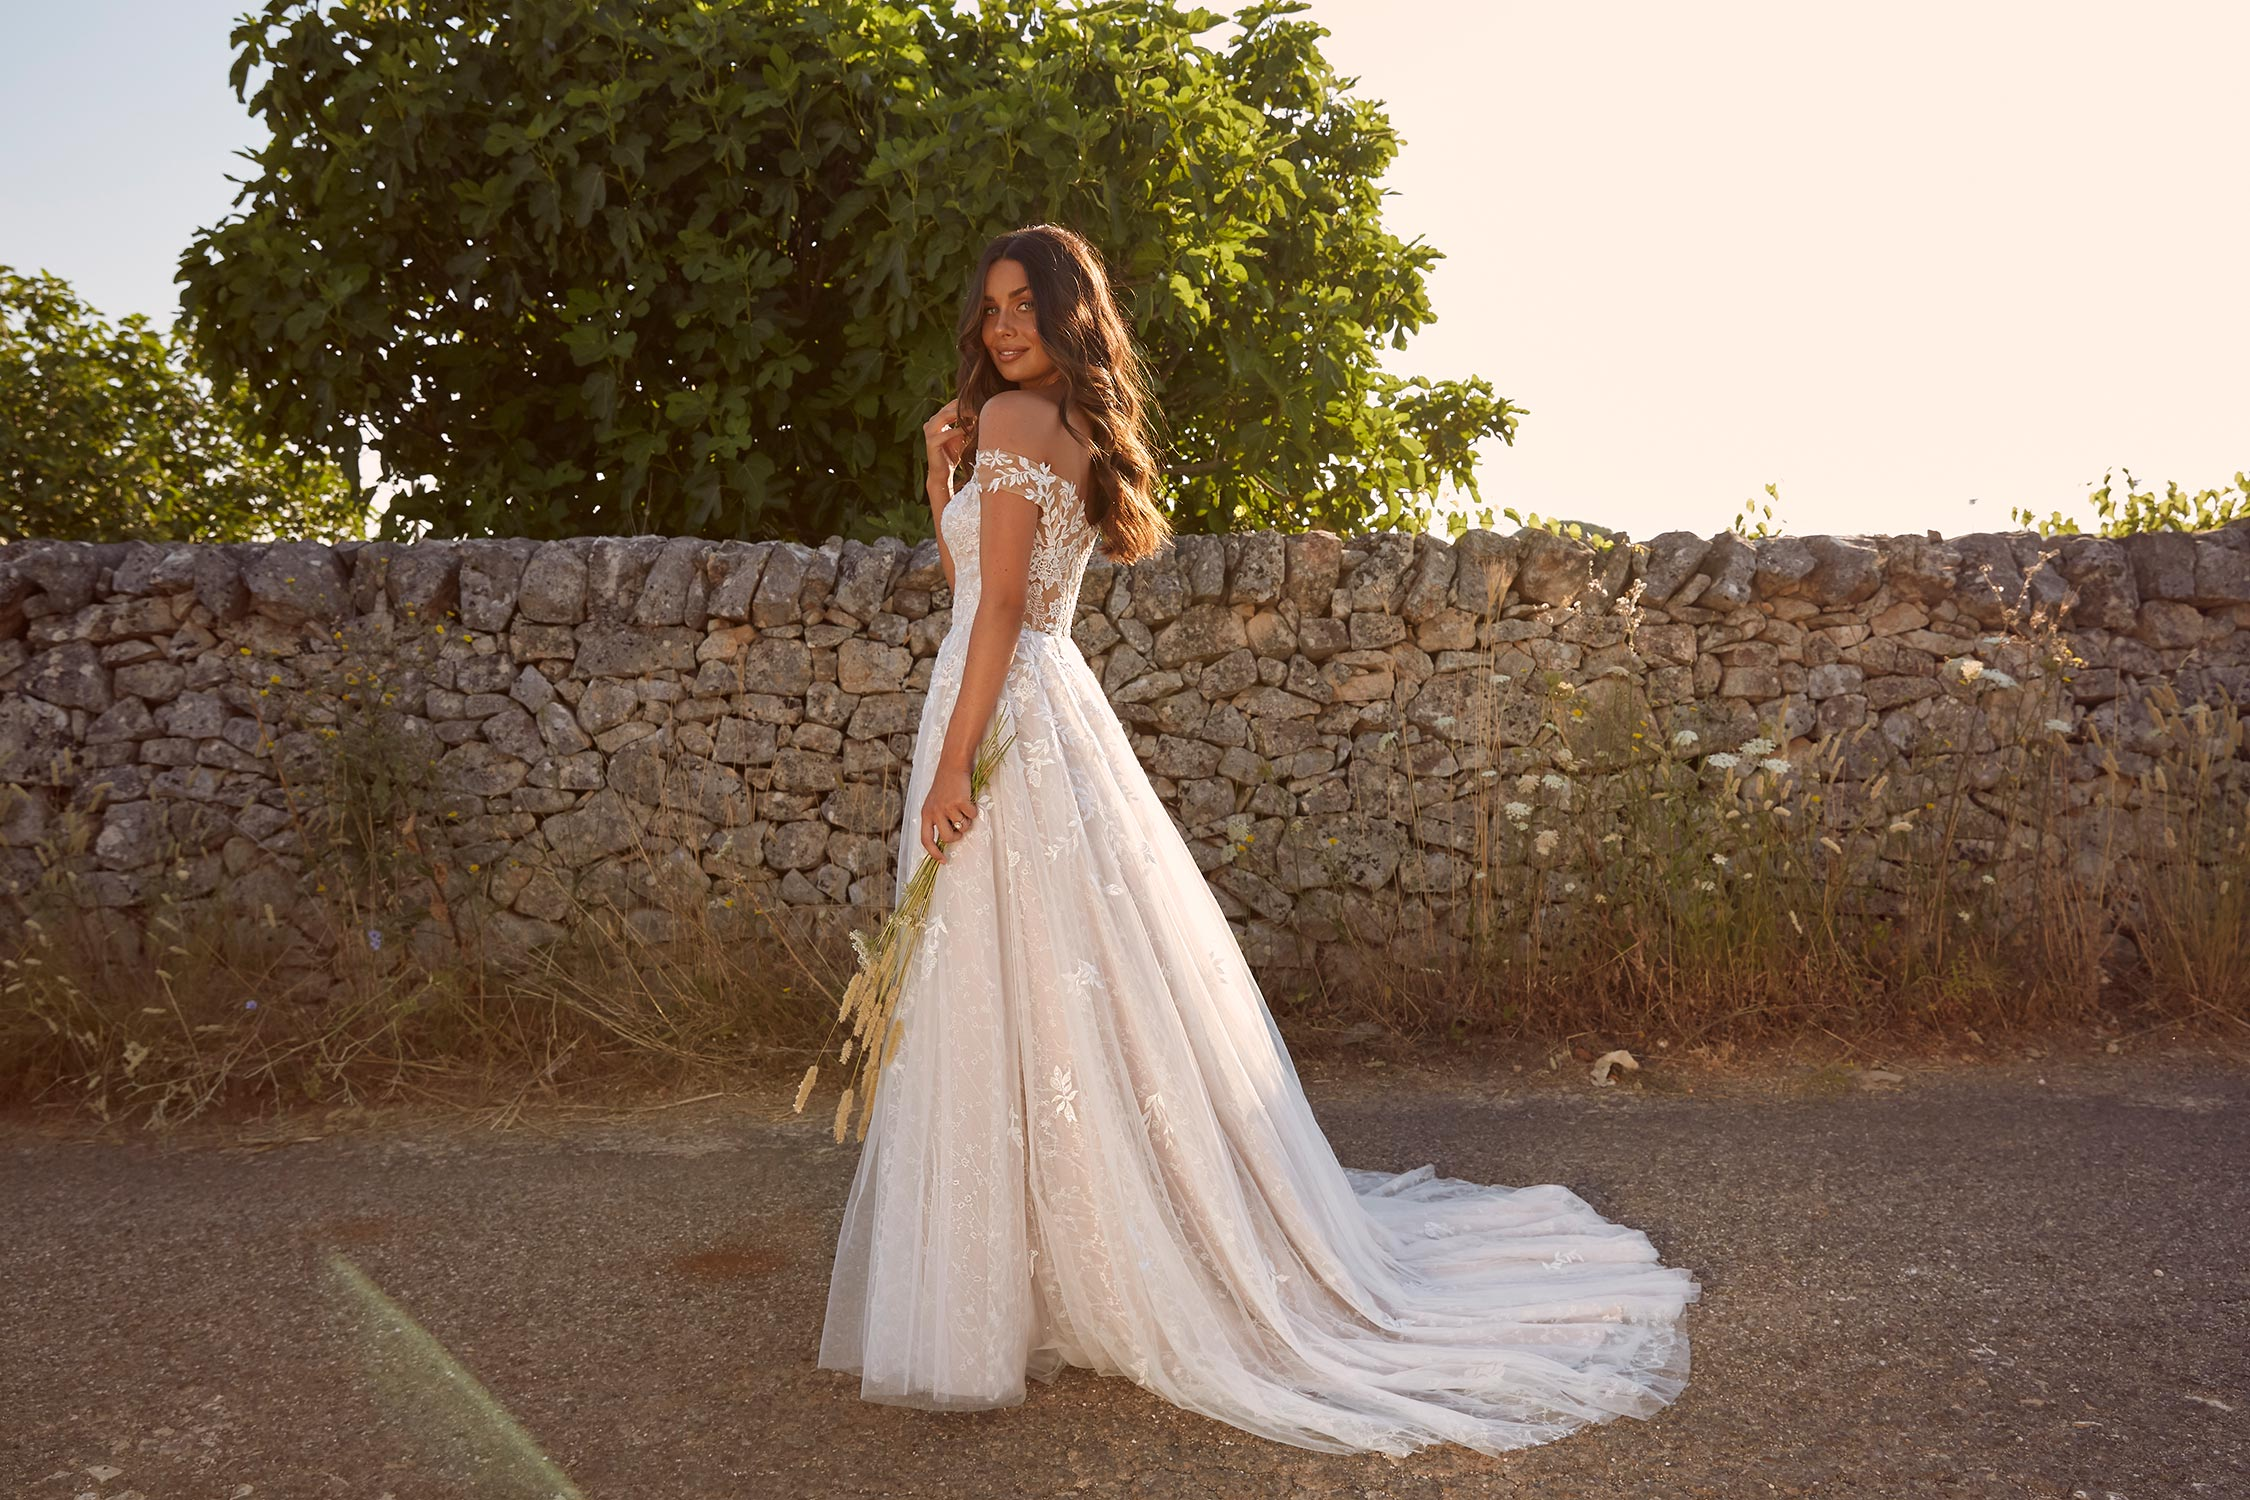 Marchelle Ml10609 Sweet Heart Neck Full Length Floral Lace With Off The Shoulder Straps Wedding Dress Madi Lane Bridal2